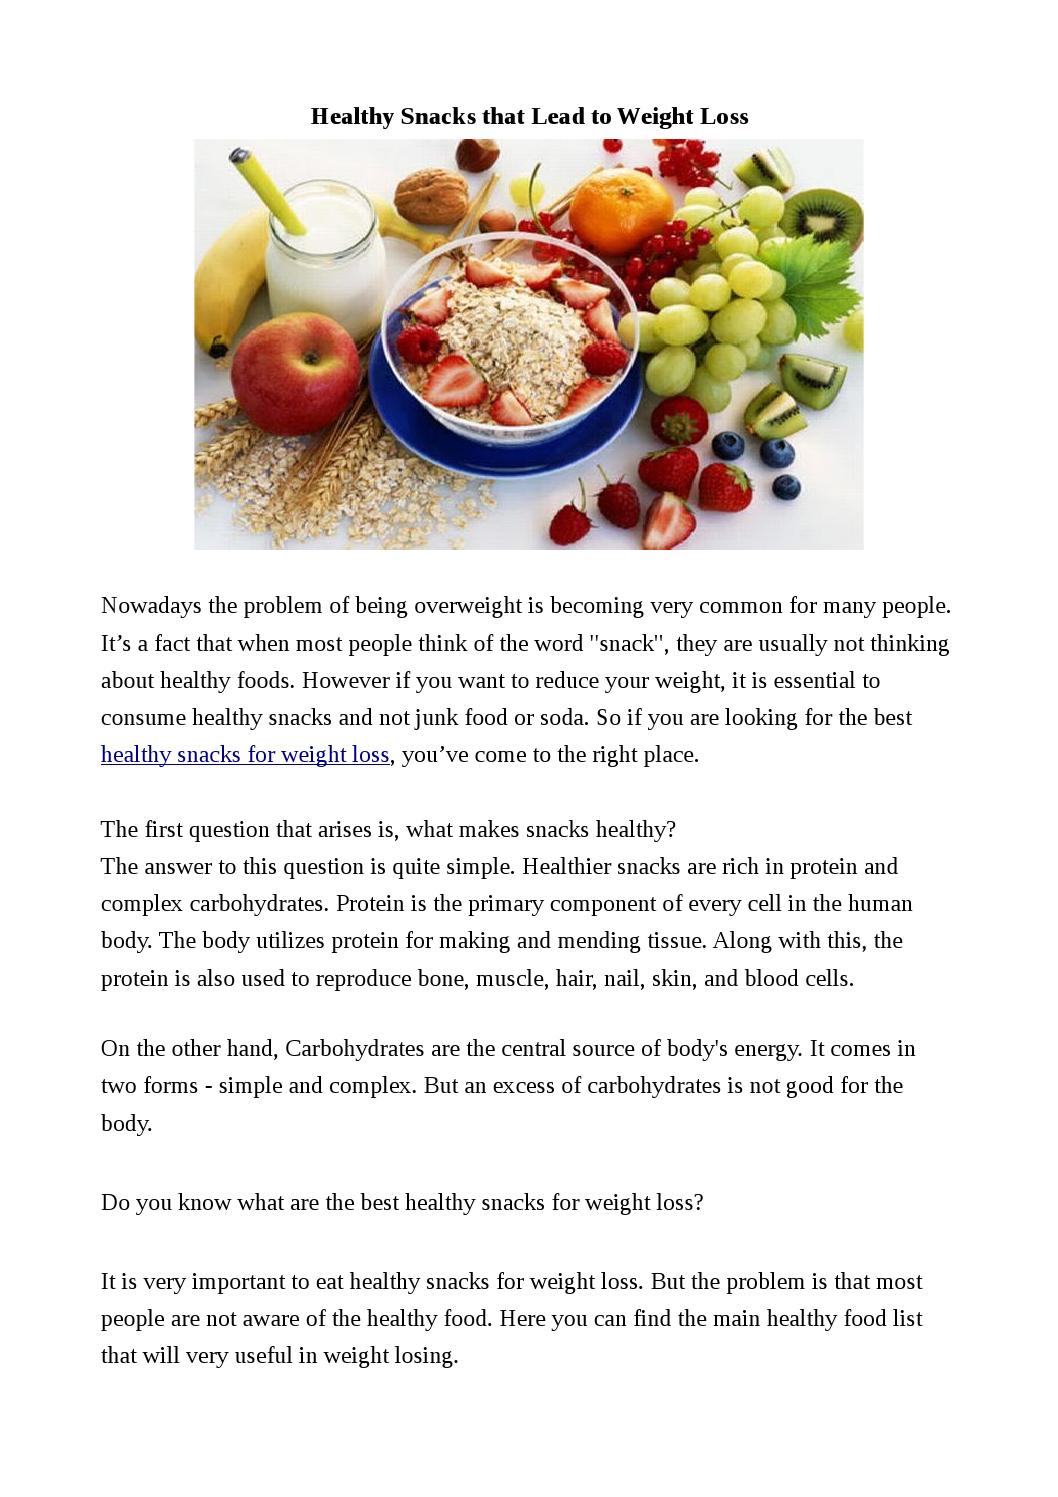 healthy snacks that lead to weight loss by healthychoicesinlife issuu